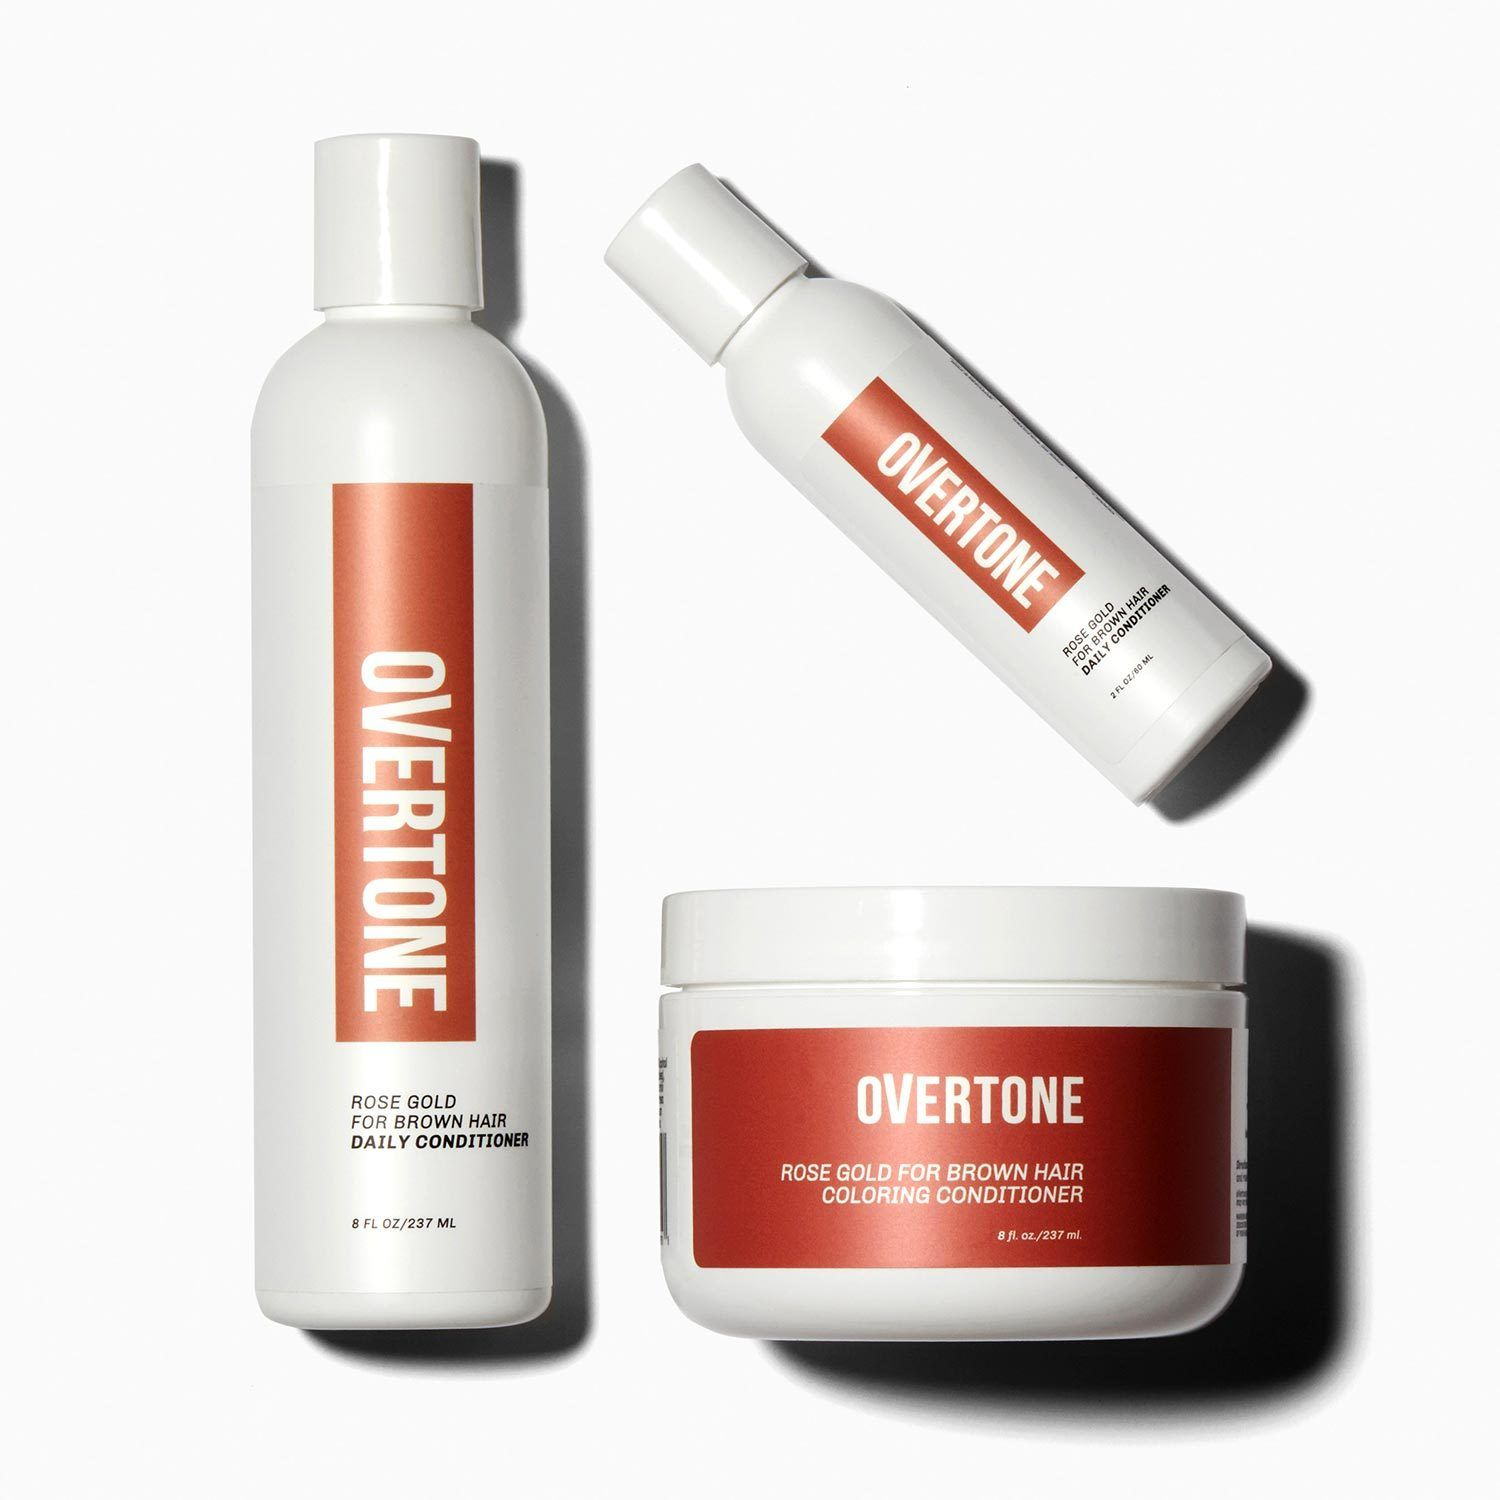 Overtone Overtone Chocolate Brown Coloring Conditioner